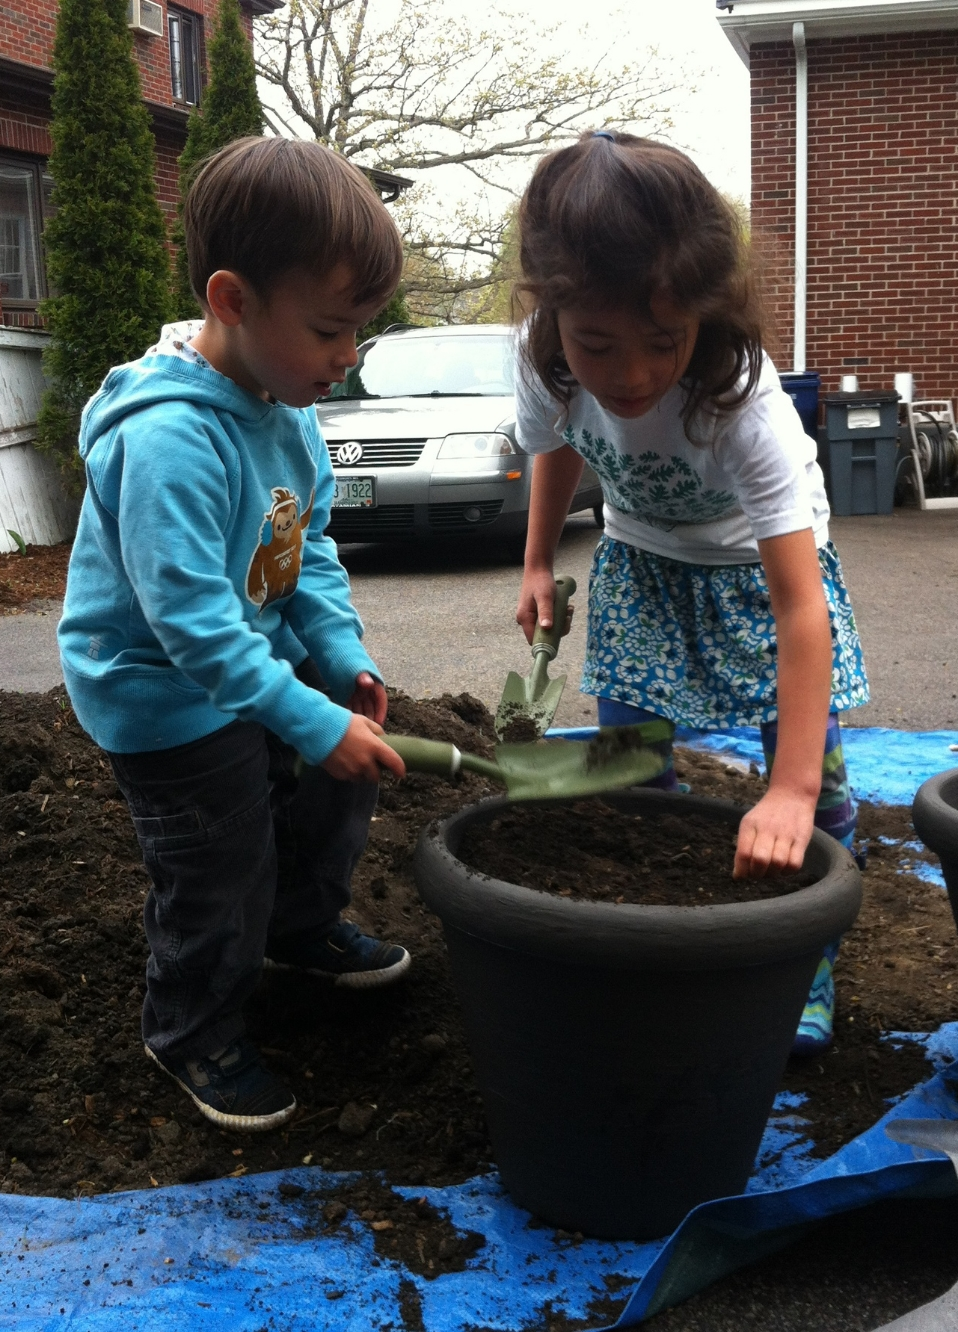 My niece and nephew planting seeds